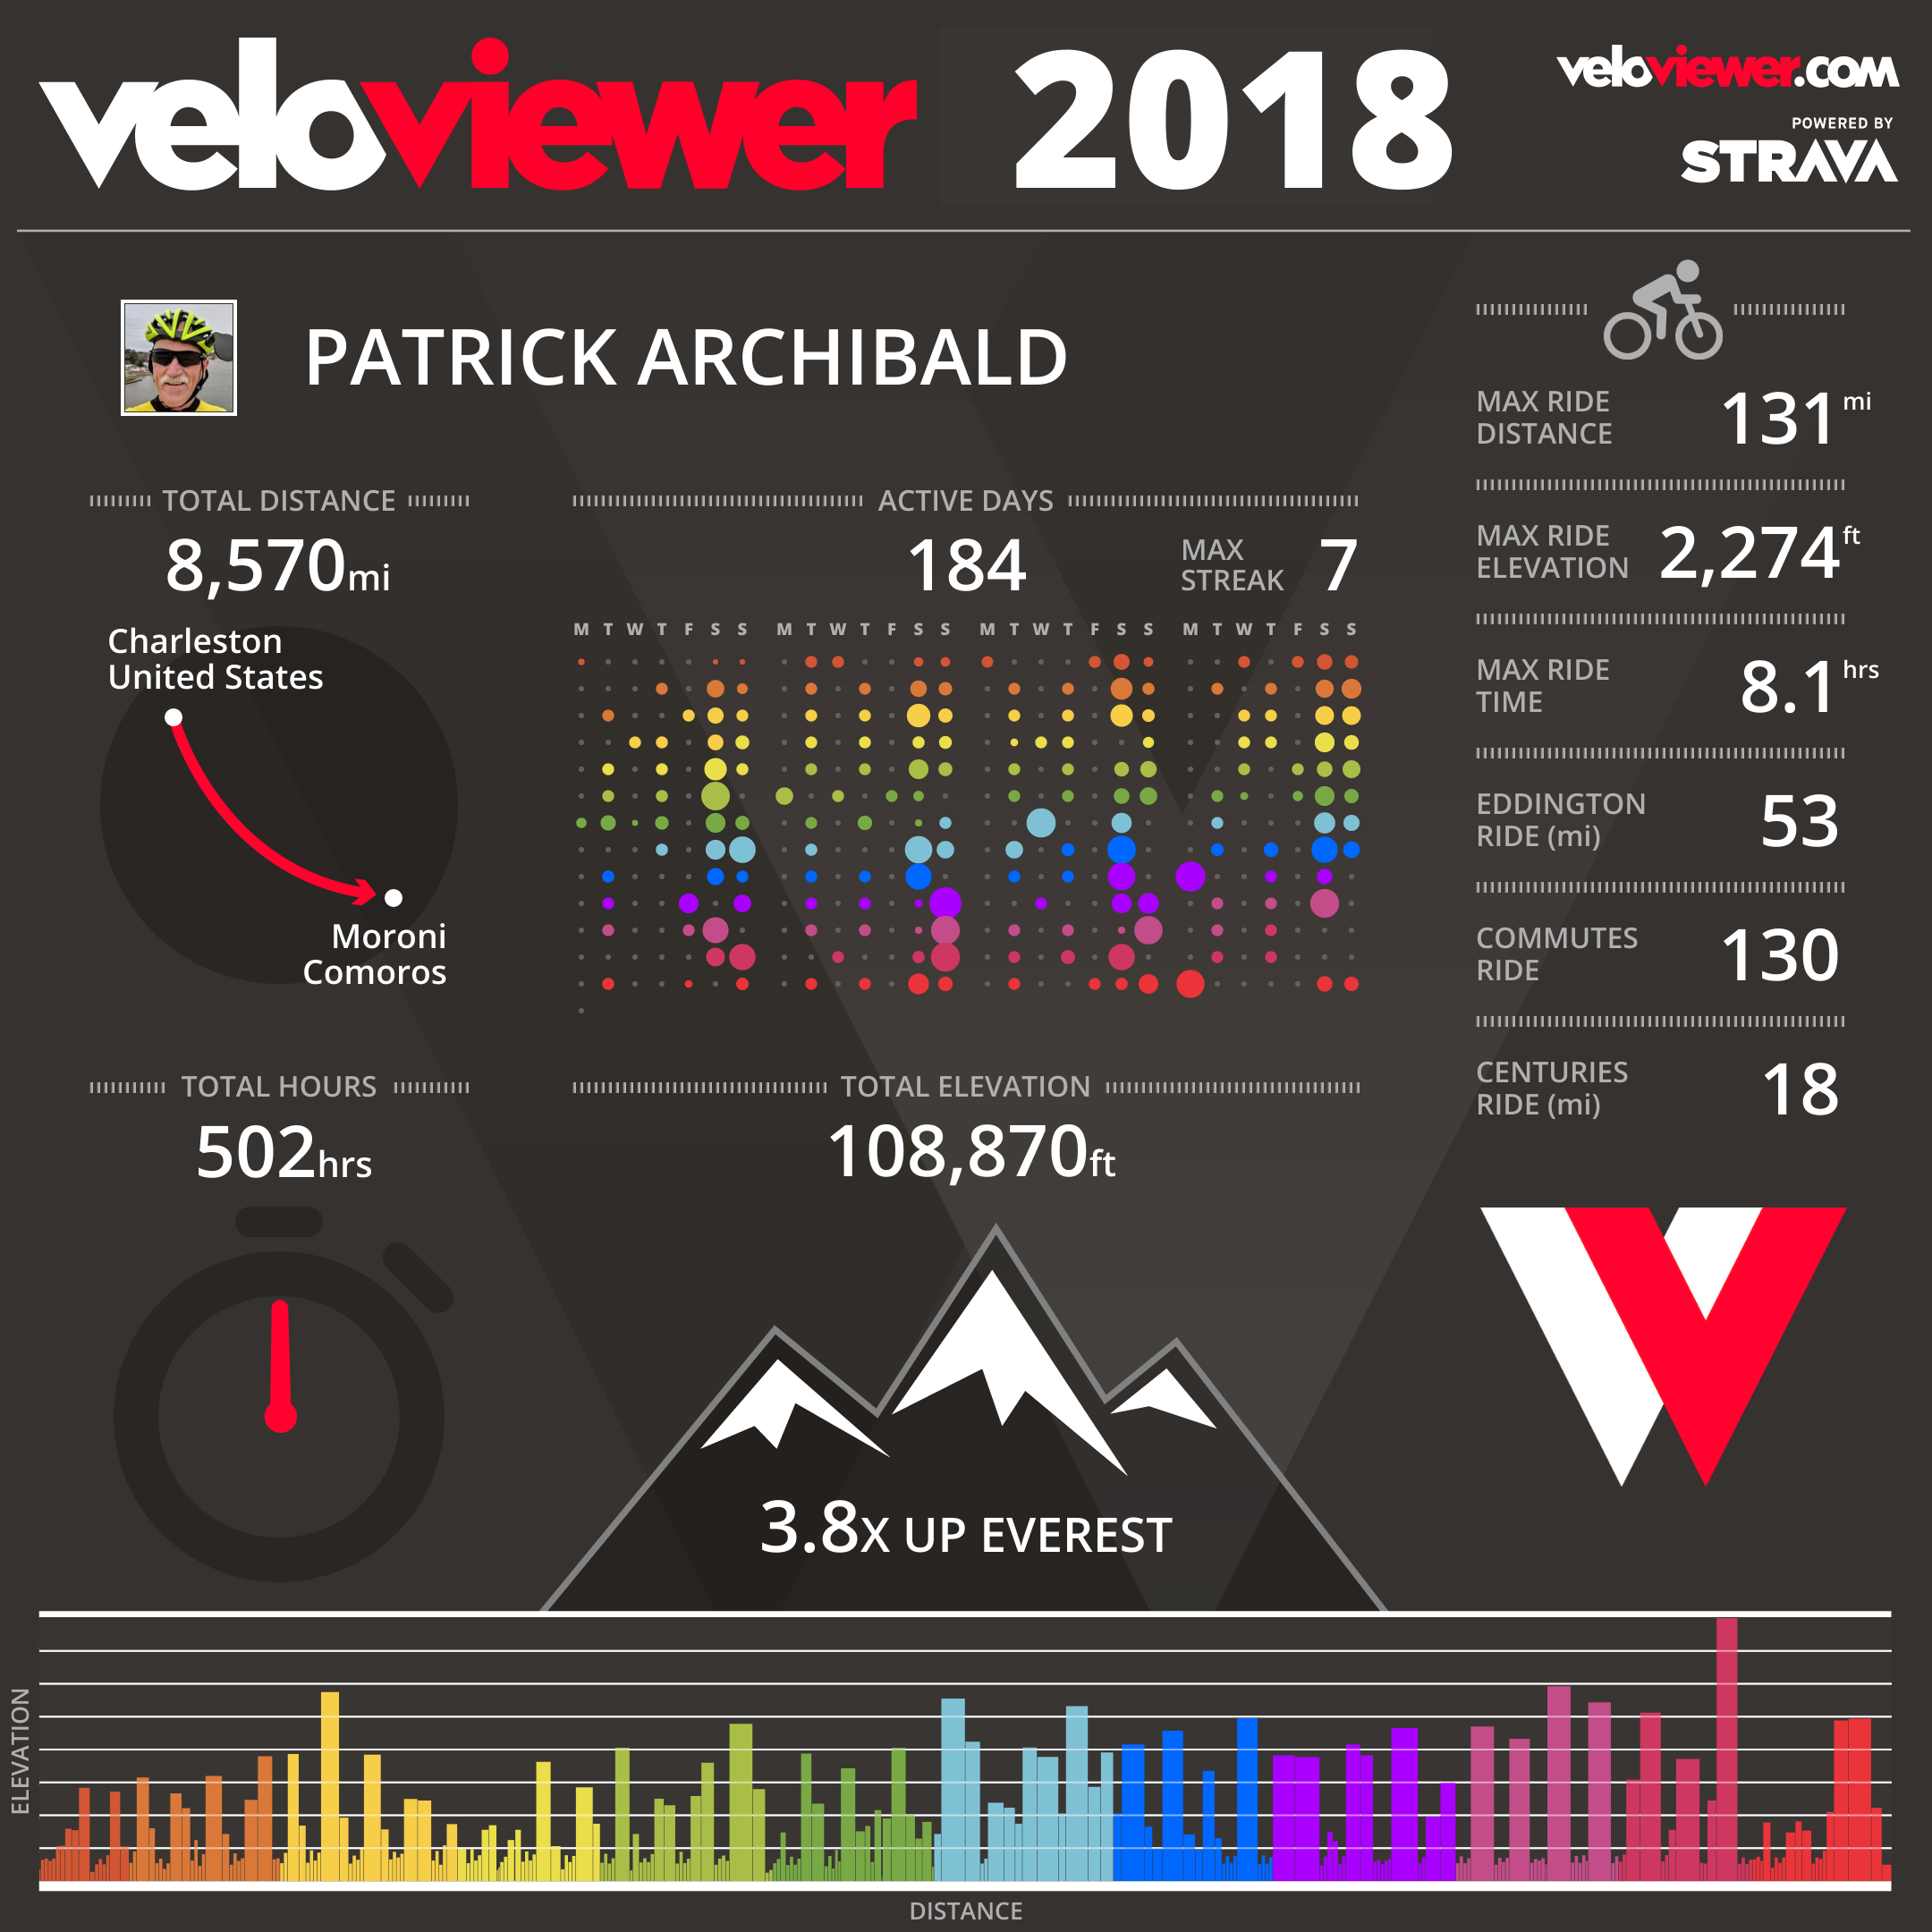 VeloViewer image for 2018